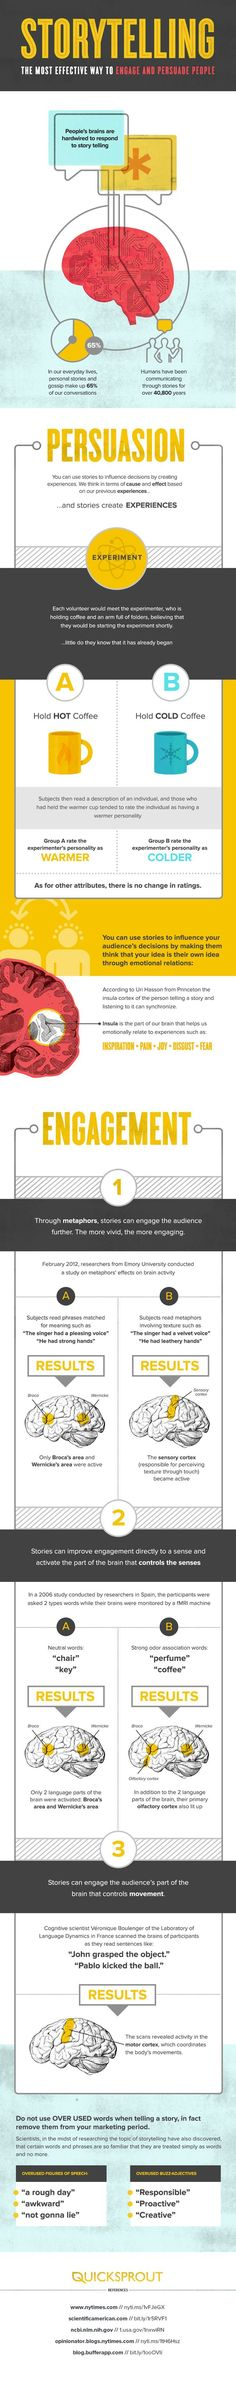 Storytelling The Most Effective Way to Engage and Persuade People